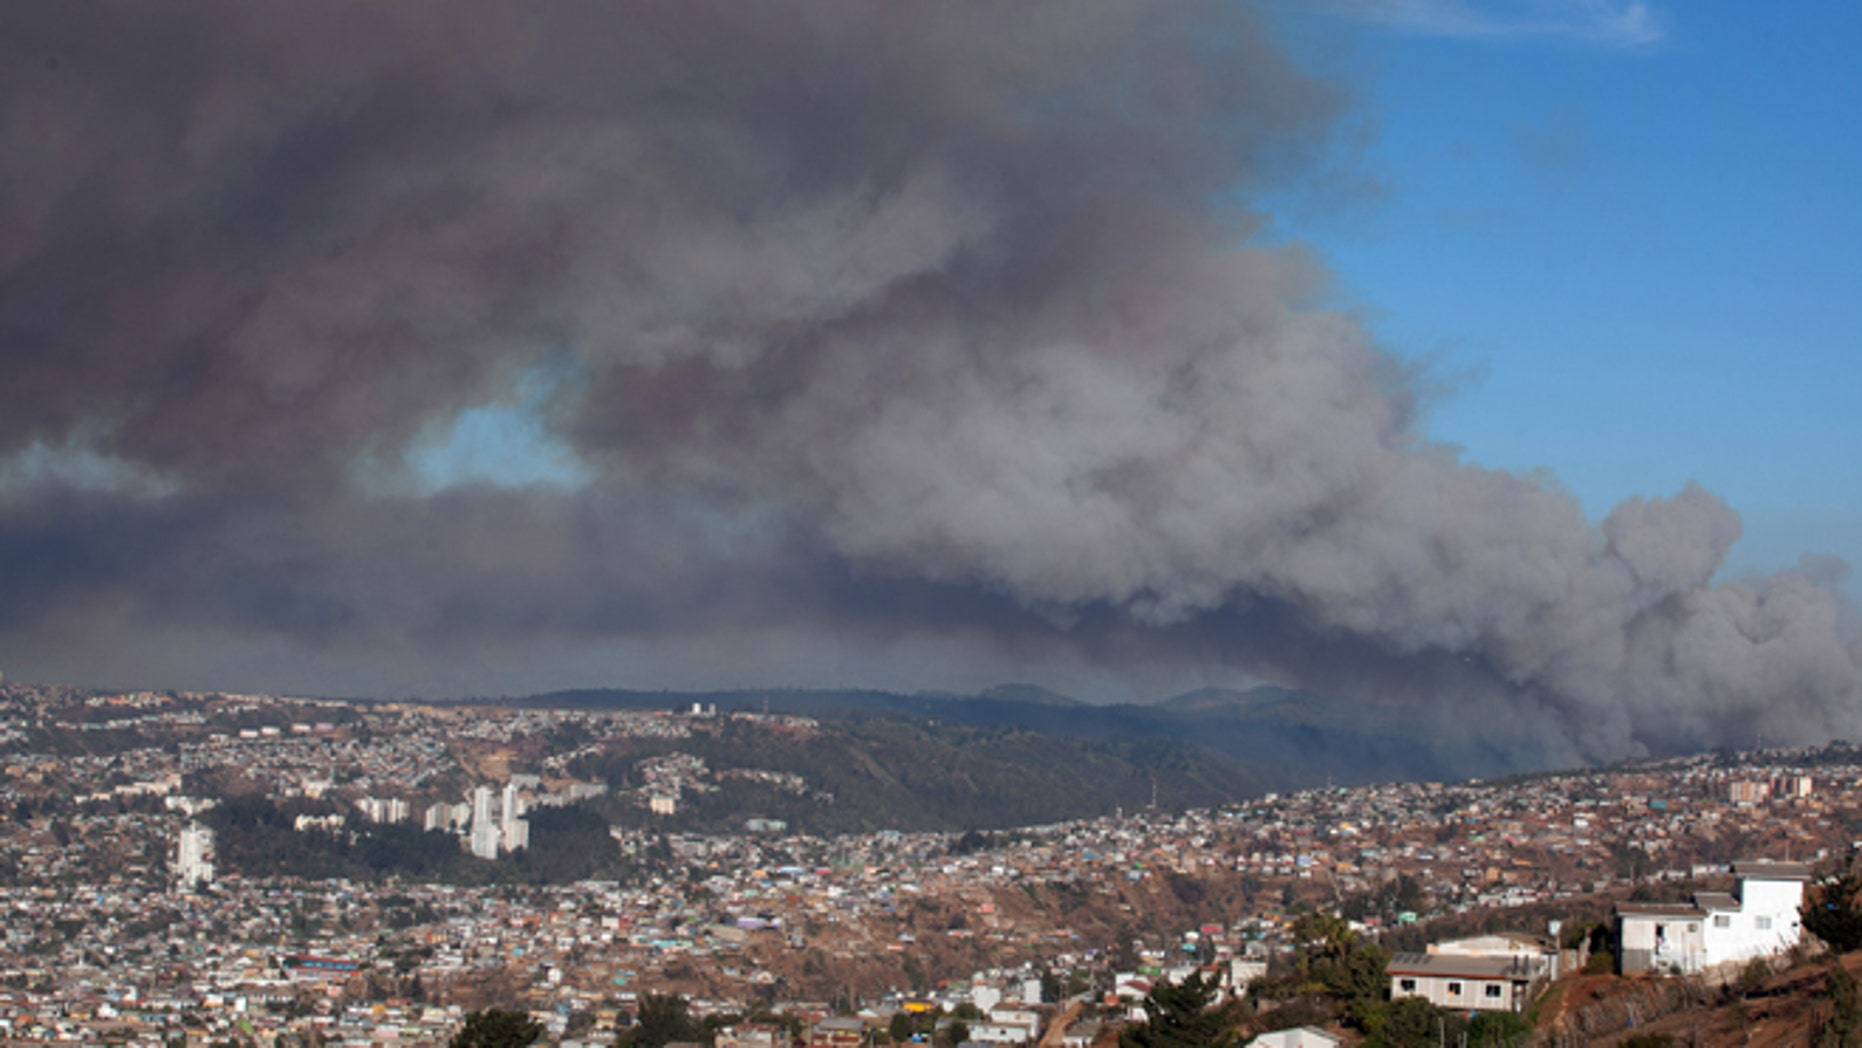 Plumes of smoke from a wild fire rise over Valparaiso, Chile, Friday, March 13, 2015. A serious forest fire spread quickly on Chile's coast Friday and threatened to reach the nearby port cities of Valparaiso and Vina del Mar. Deputy Interior Secretary Mahmud Aleuy said that thousands have been evacuated as flames advanced nearby. (AP Photo)